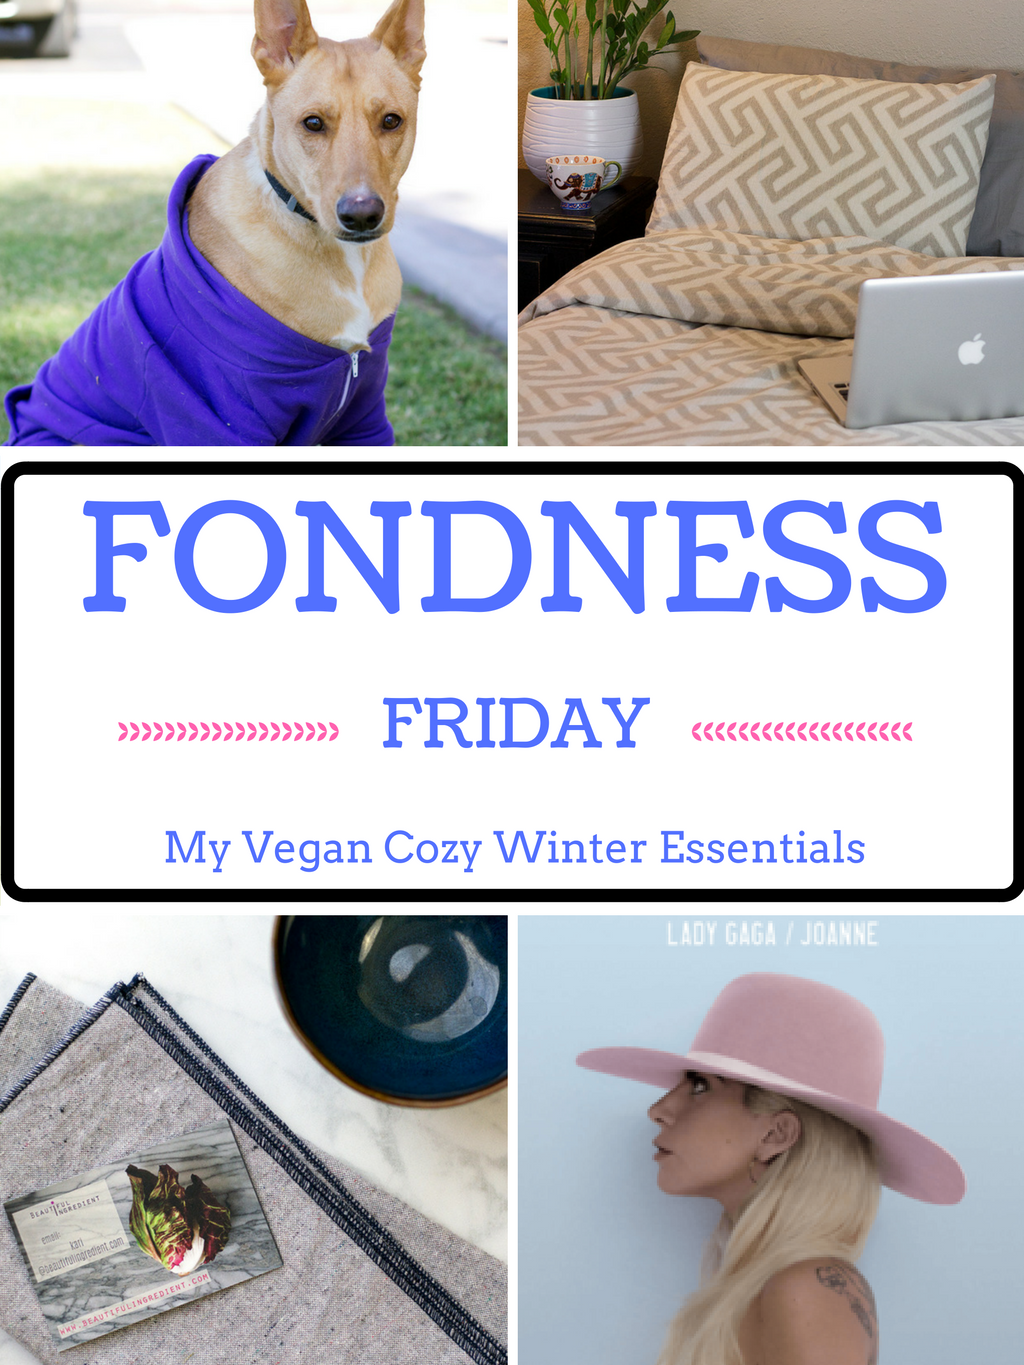 fondness friday: my vegan cozy winter essentials